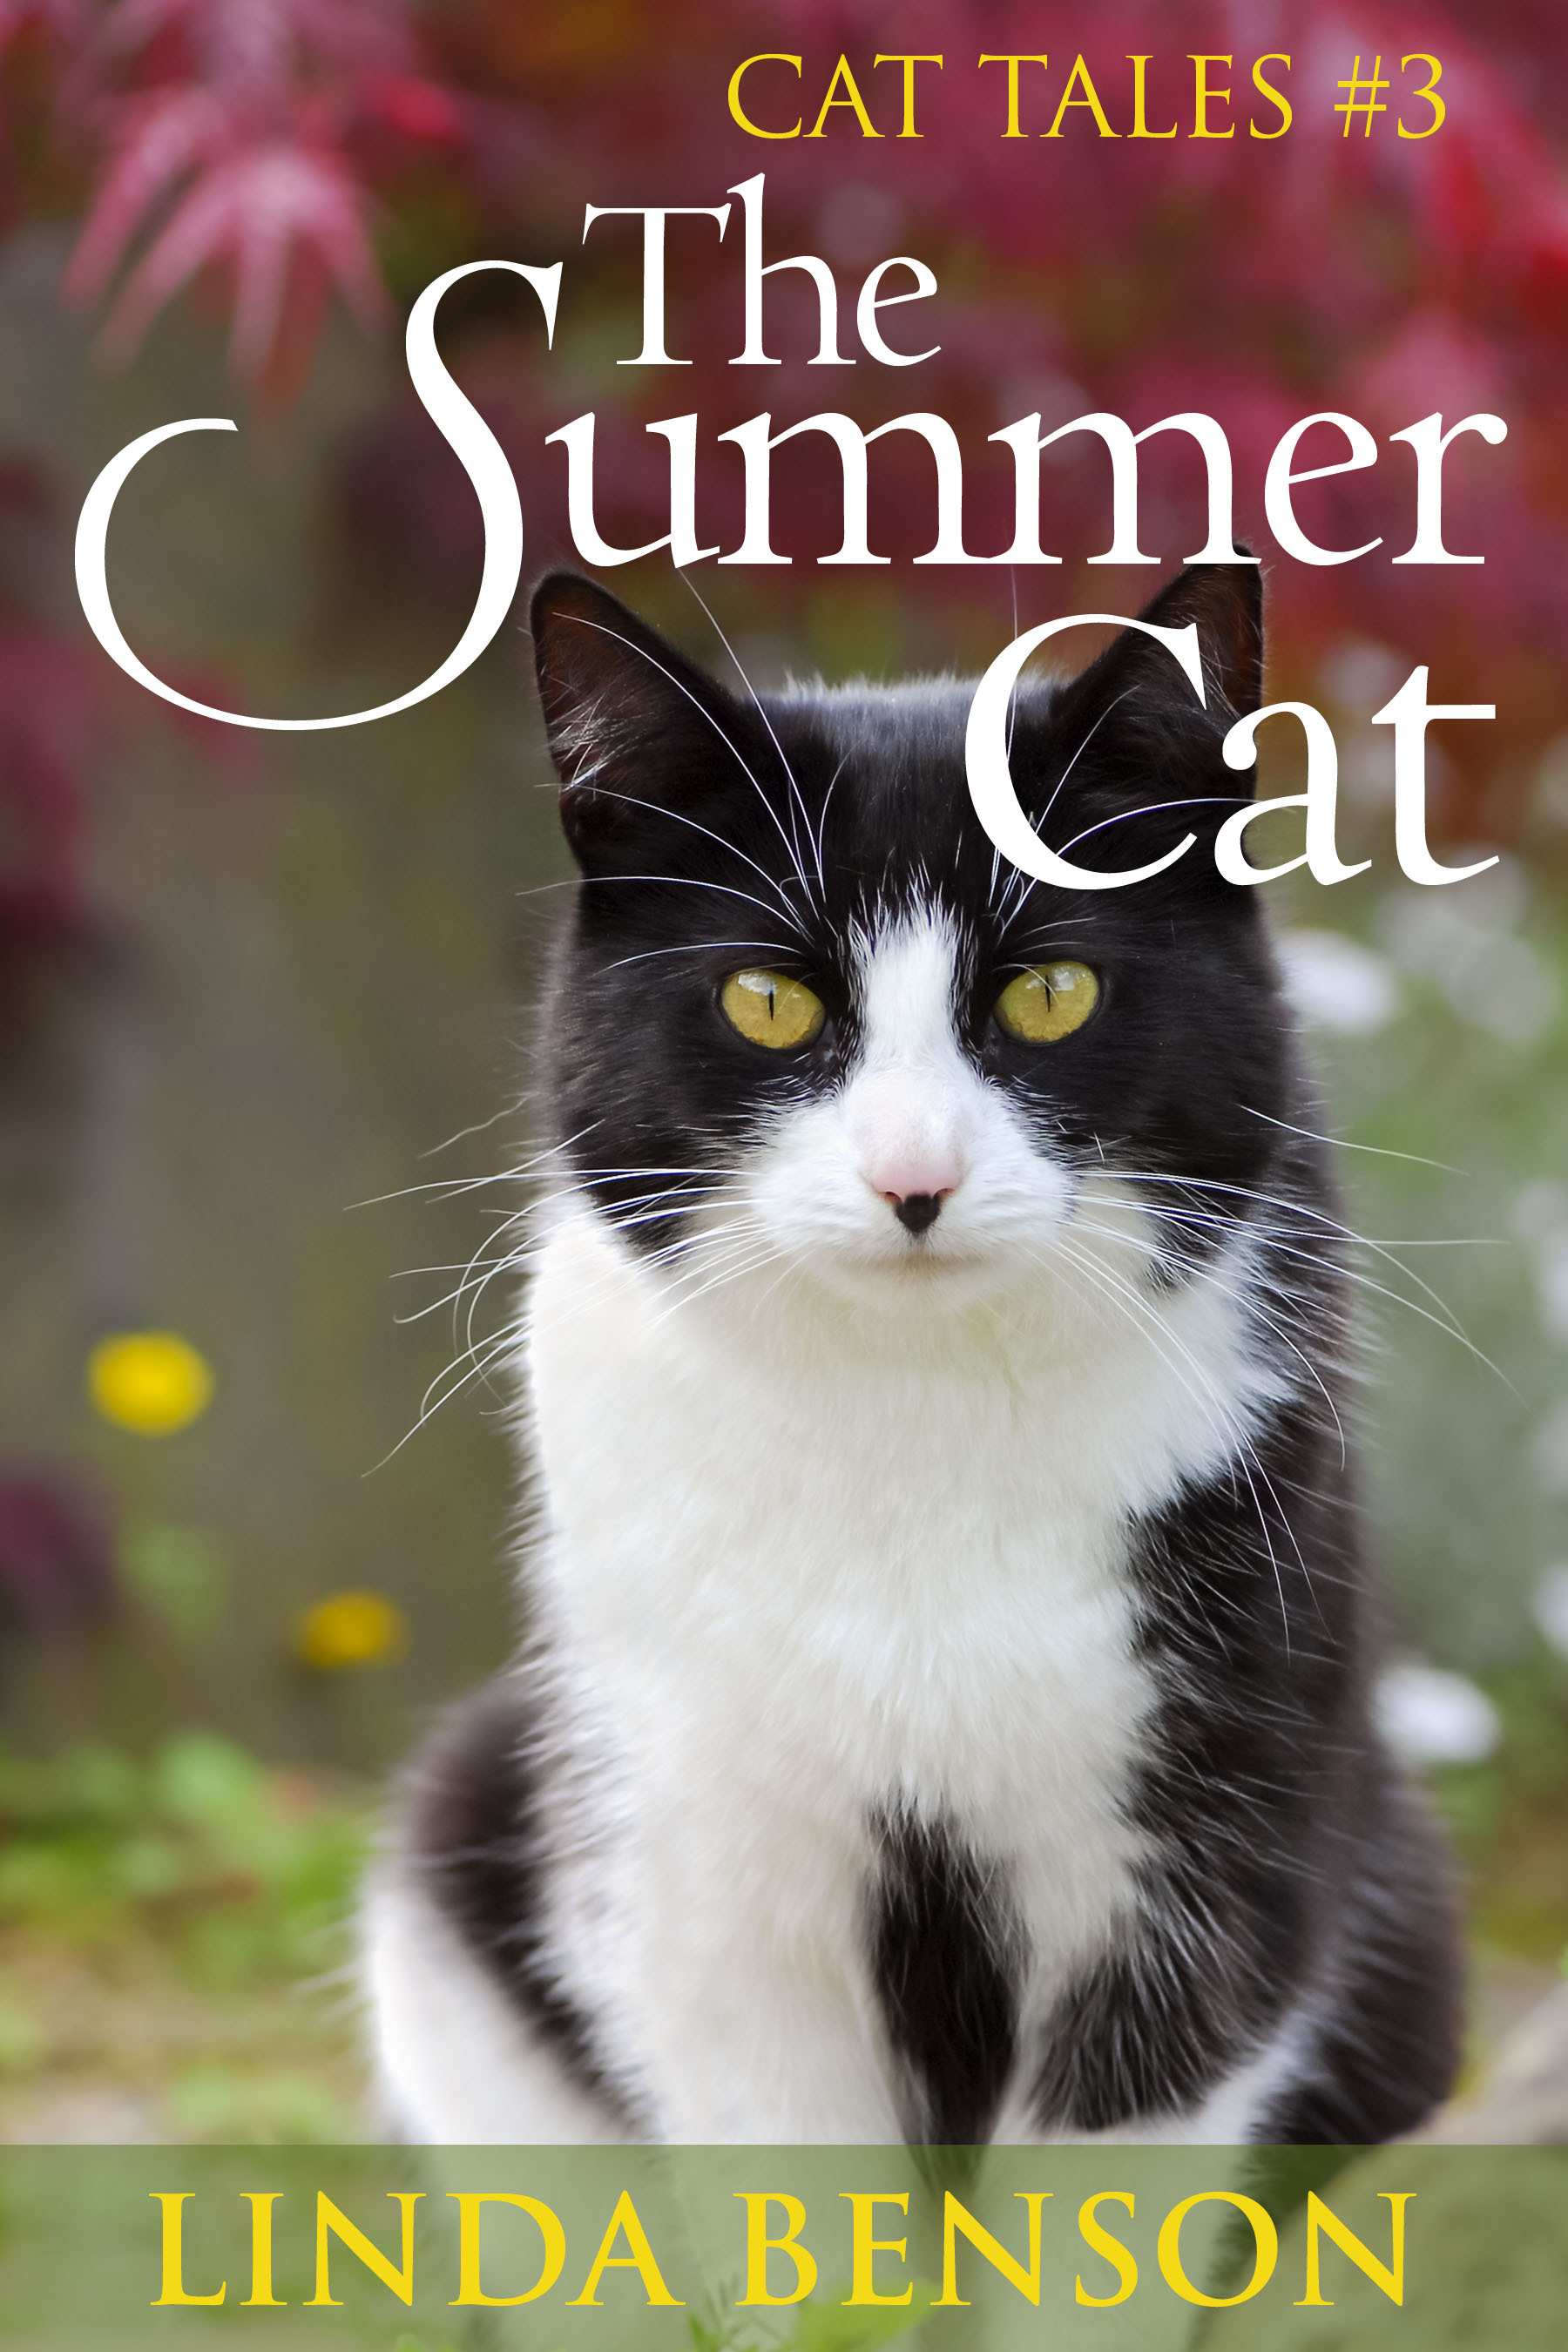 The Summer Cat